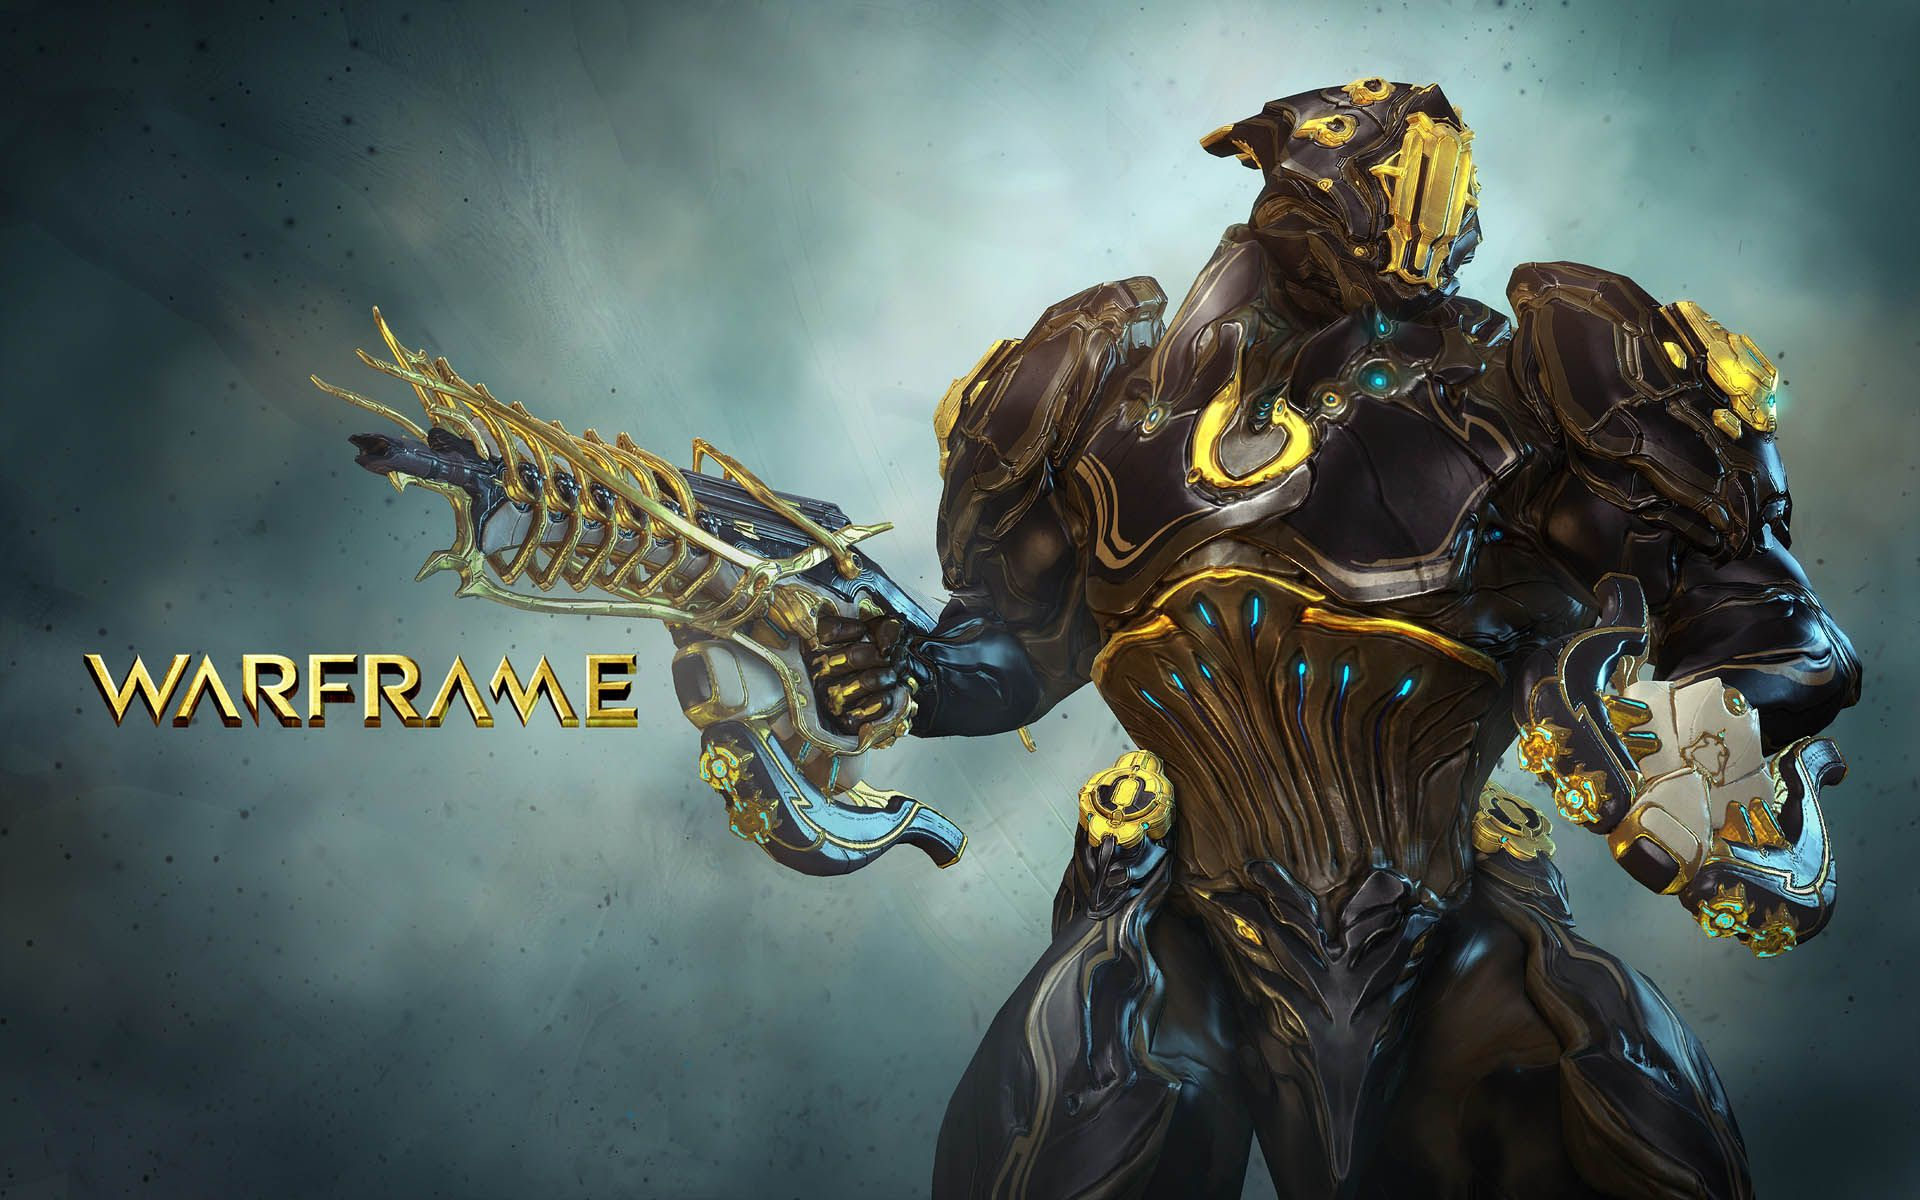 Warframe Wallpapers Rhino Desktop Background Warframe Wallpaper Warframe Art Warframe Gameplay